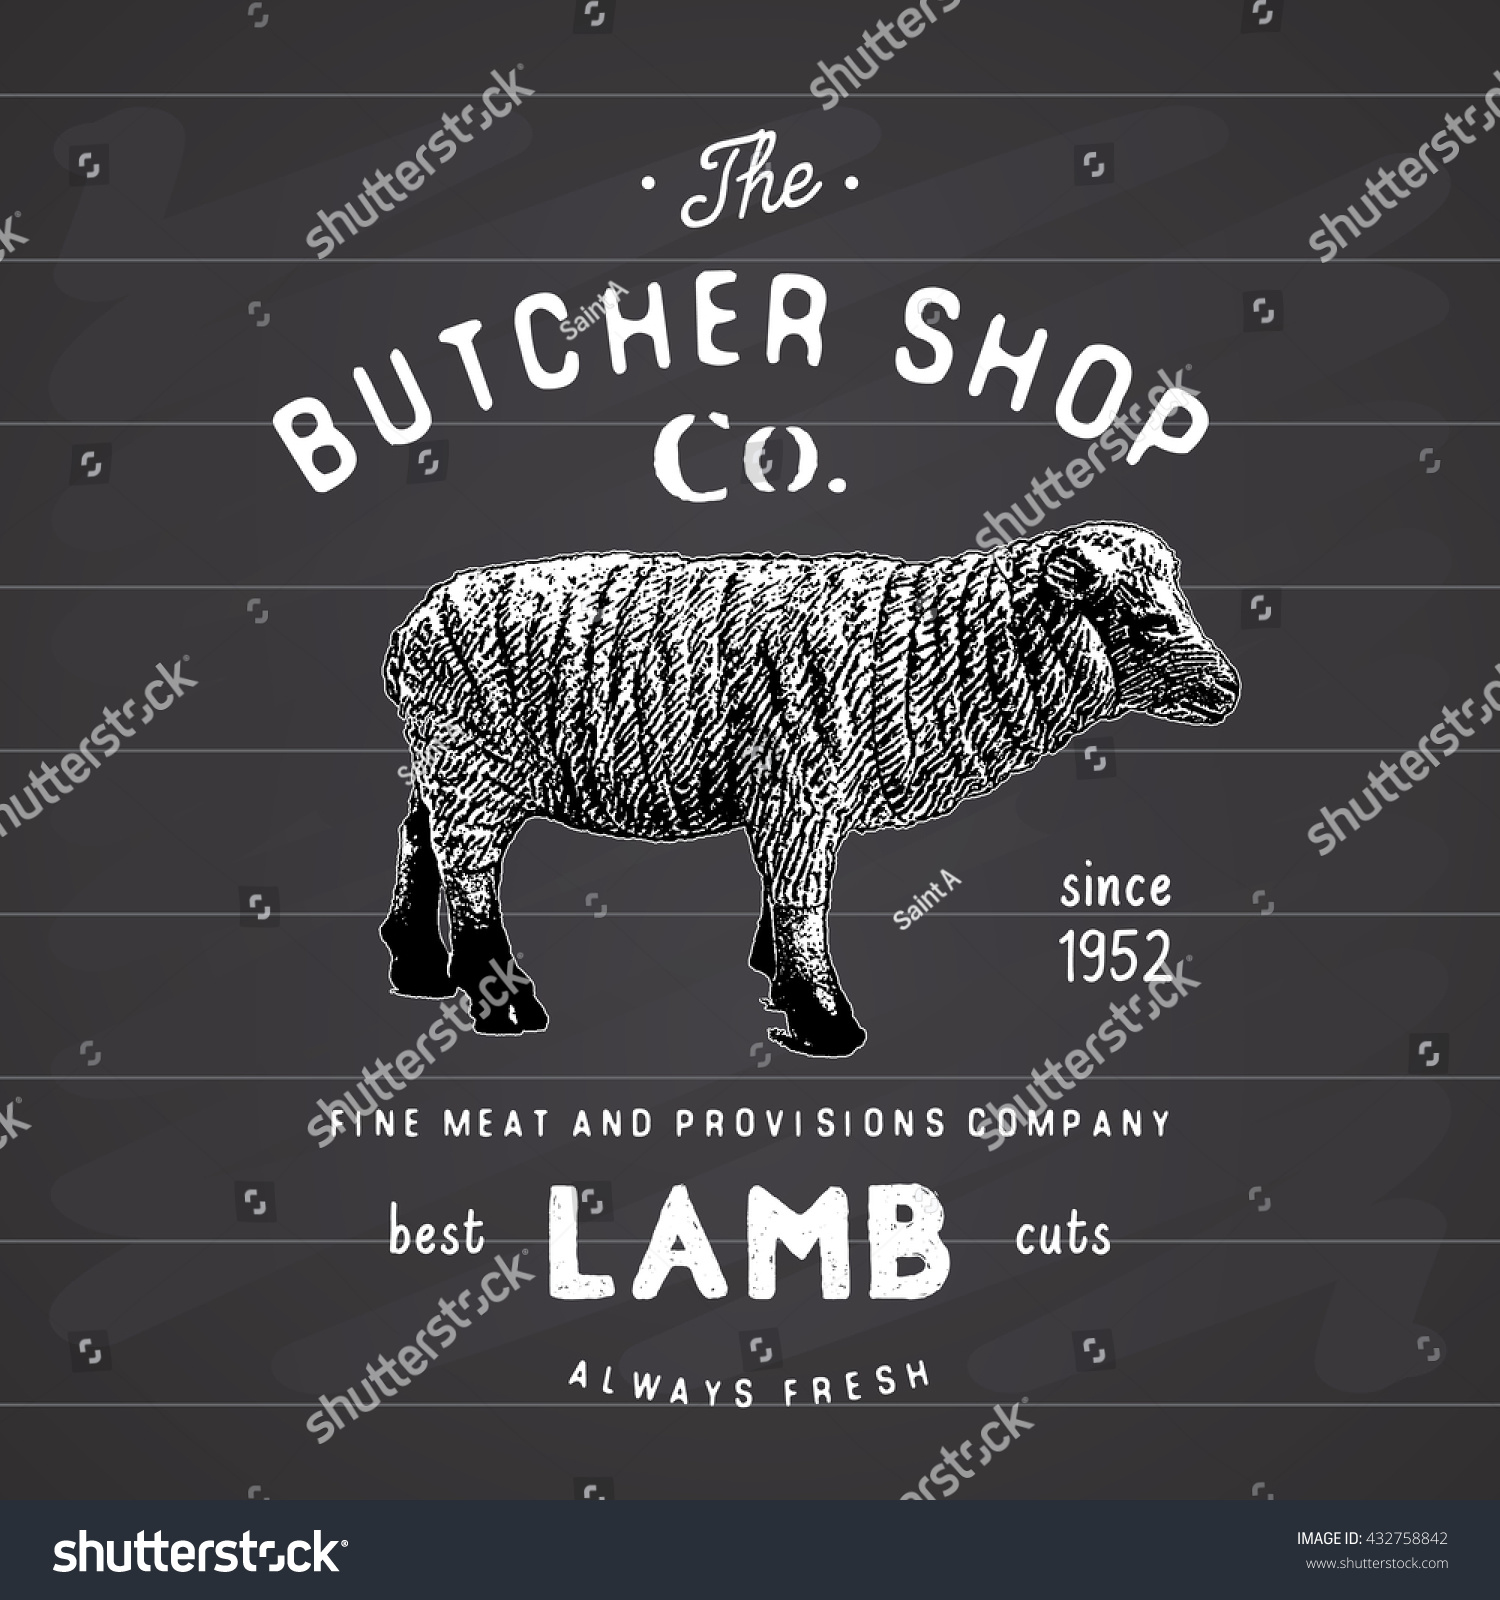 Butcher Shop Vintage Emblem Lamb Meat Stock Vector (Royalty Free ...